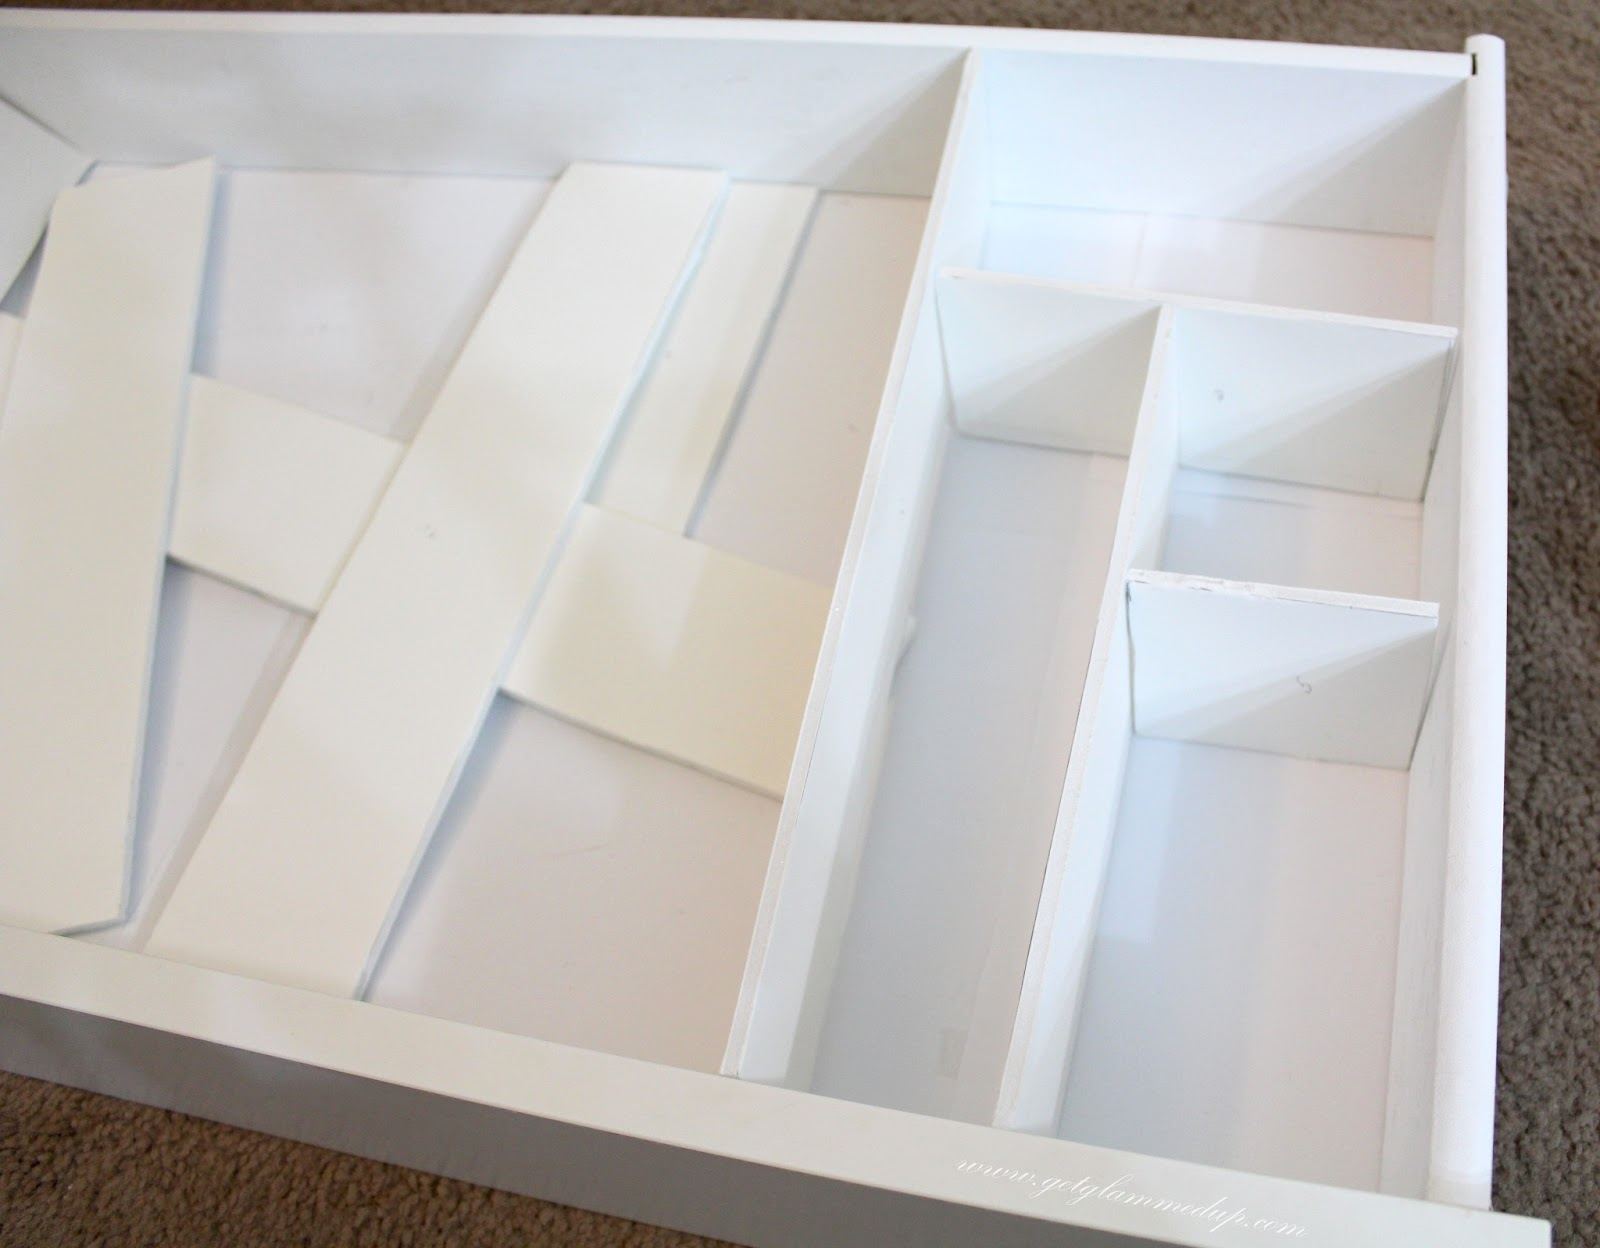 Diy custom drawer dividers getglammedup for Cardboard drawers ikea